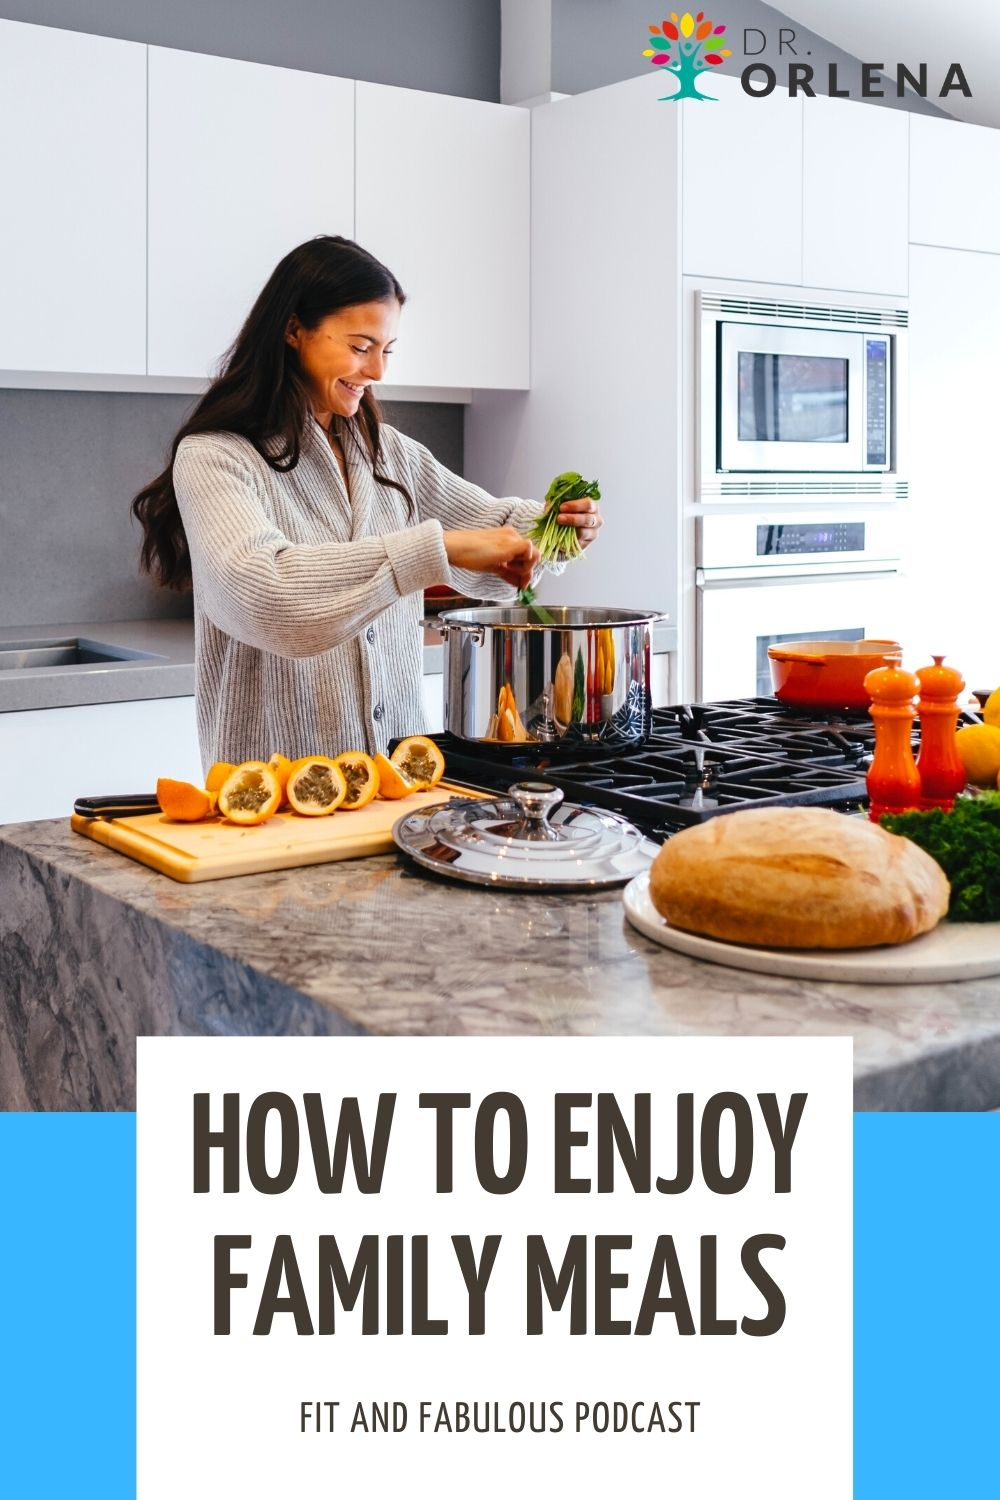 A woman making a healthy meal for her family #family #healthy #mealtime #happymealtime #healthfamily